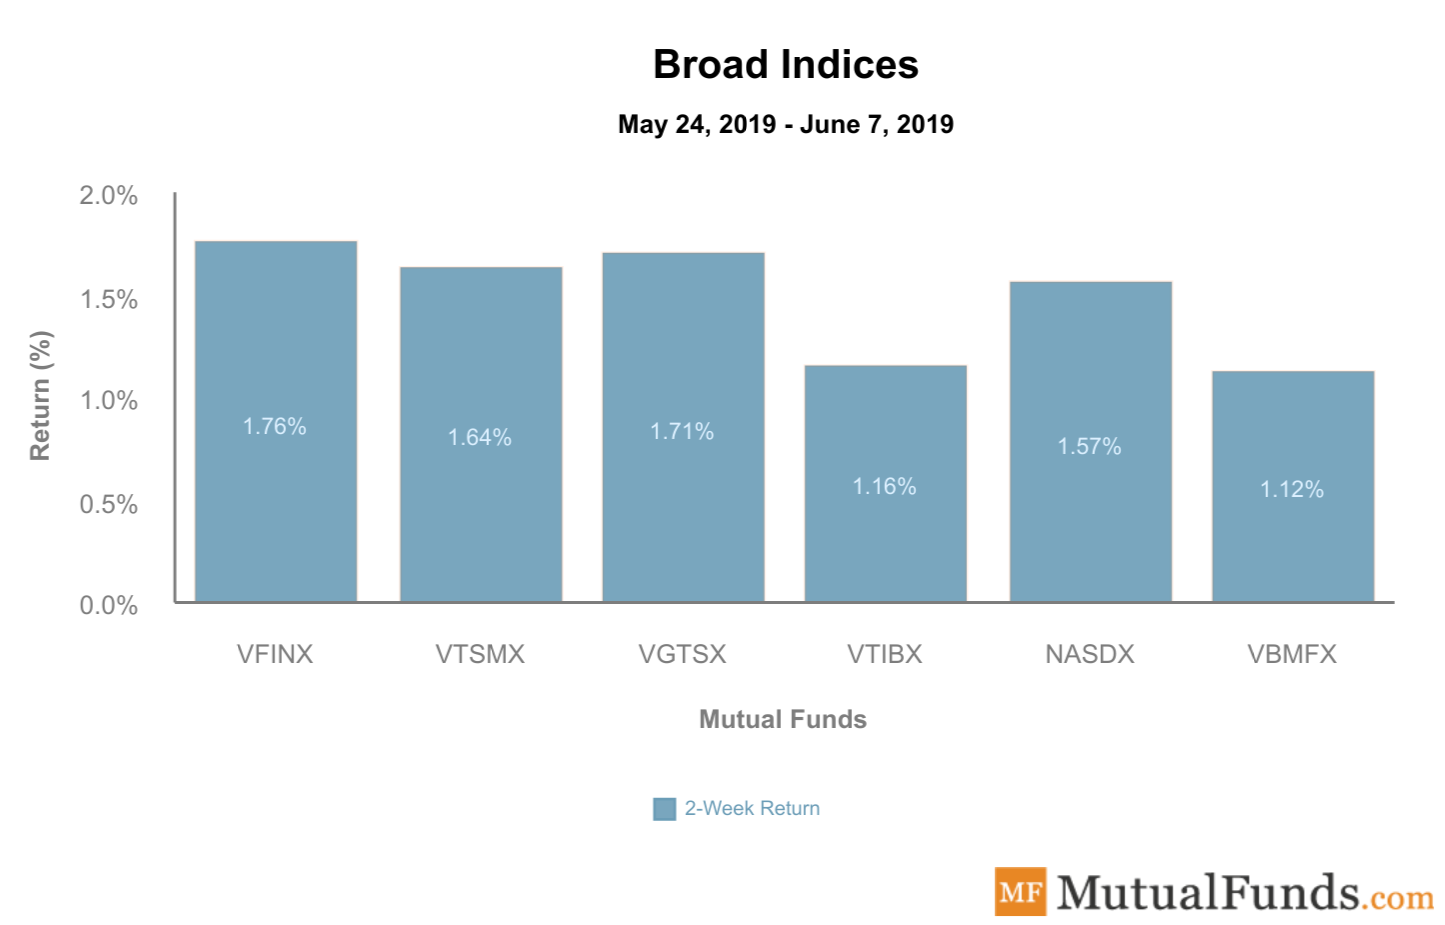 Broad indices